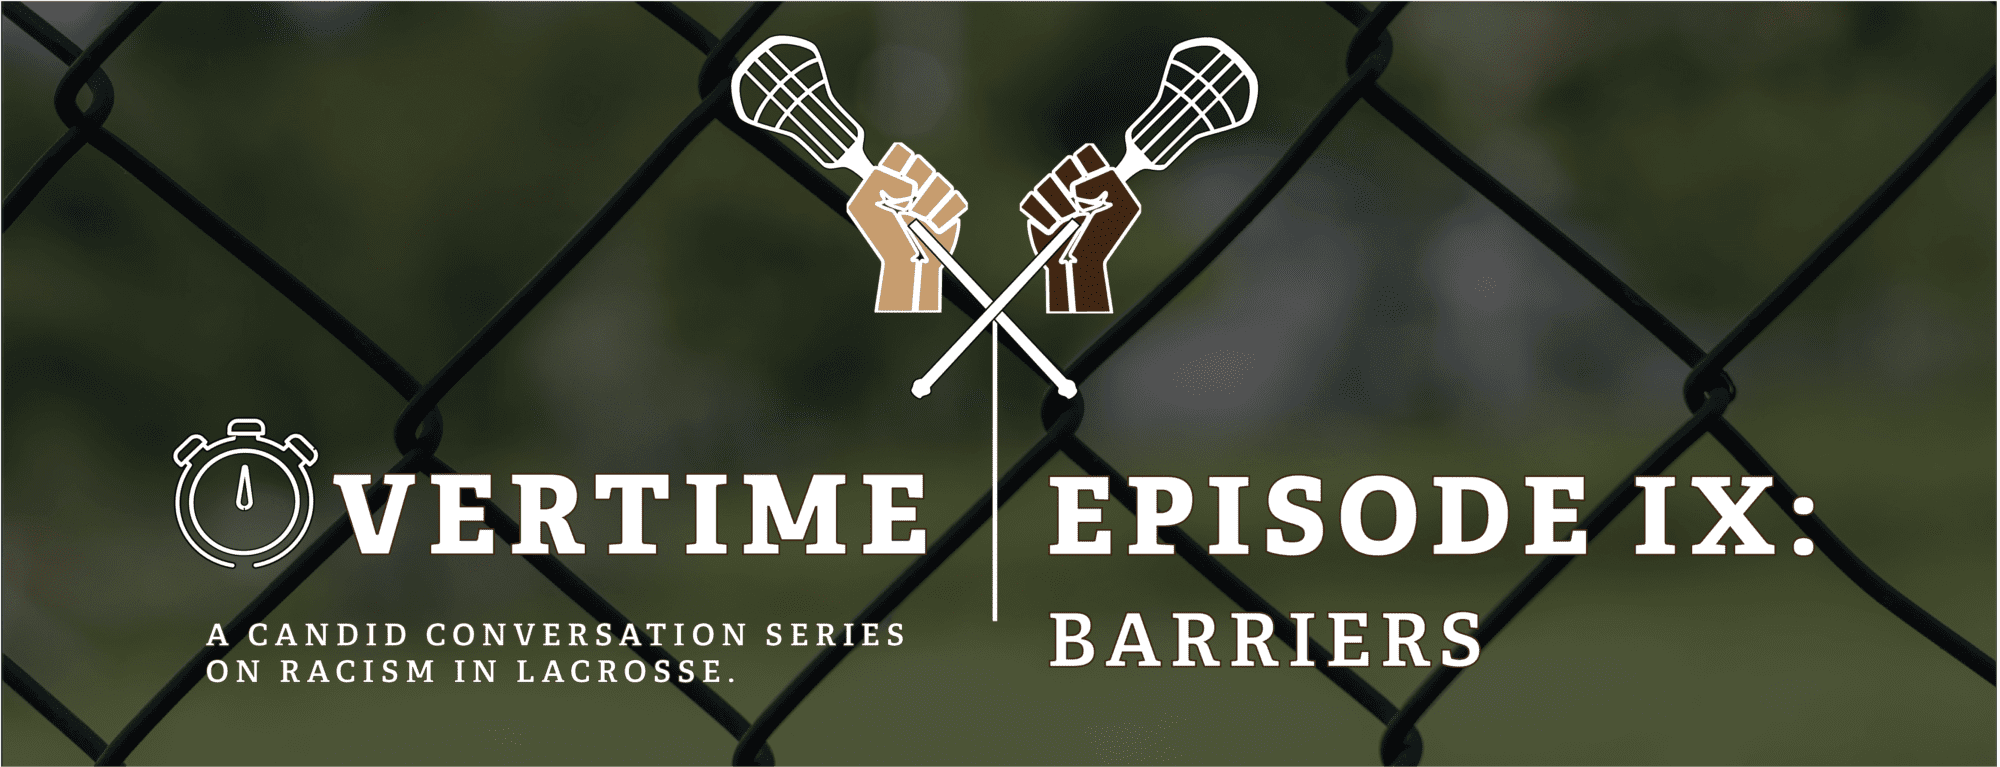 Overtime Episode 9 - Barriers